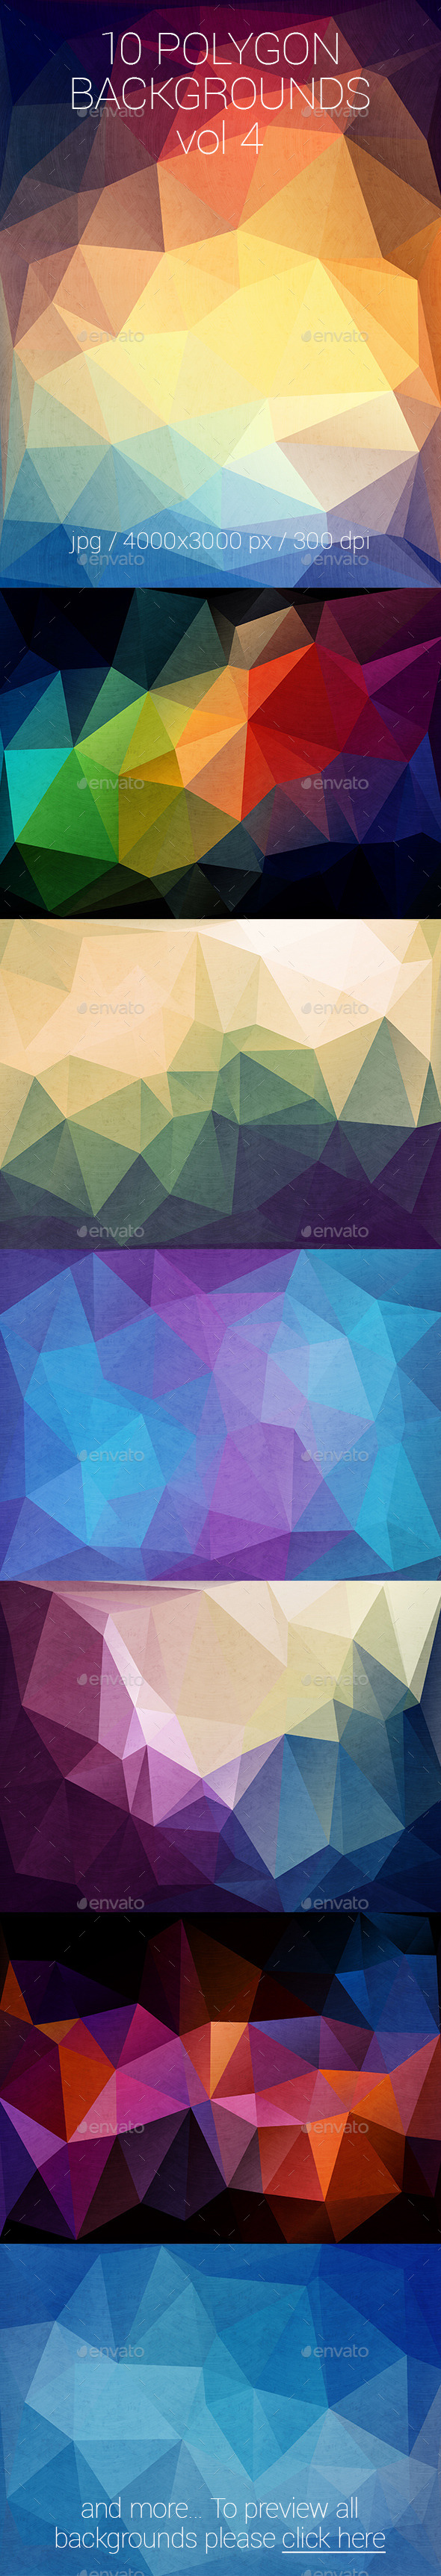 GraphicRiver 10 Polygon Backgrounds Vol 4 10374711